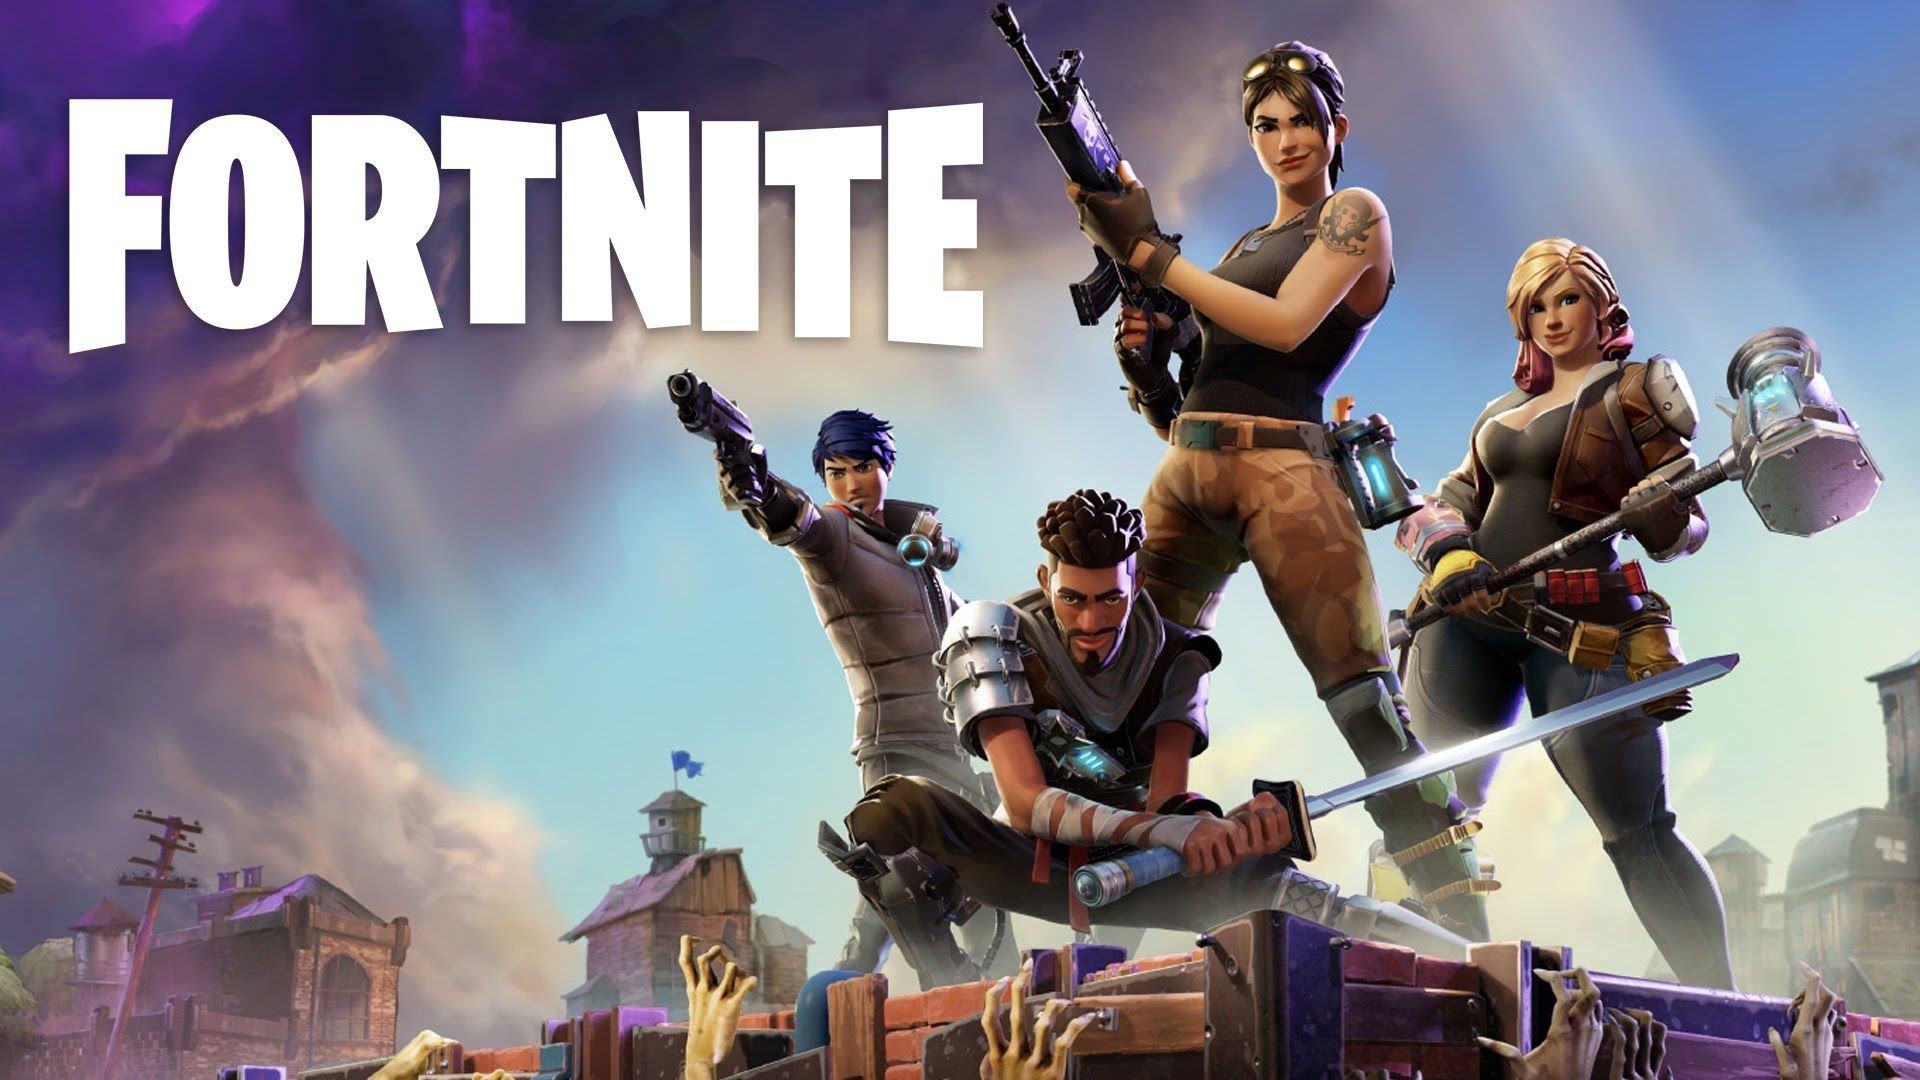 Save fortnite battle royale hd wallpapers read games - Fortnite save the world wallpaper ...